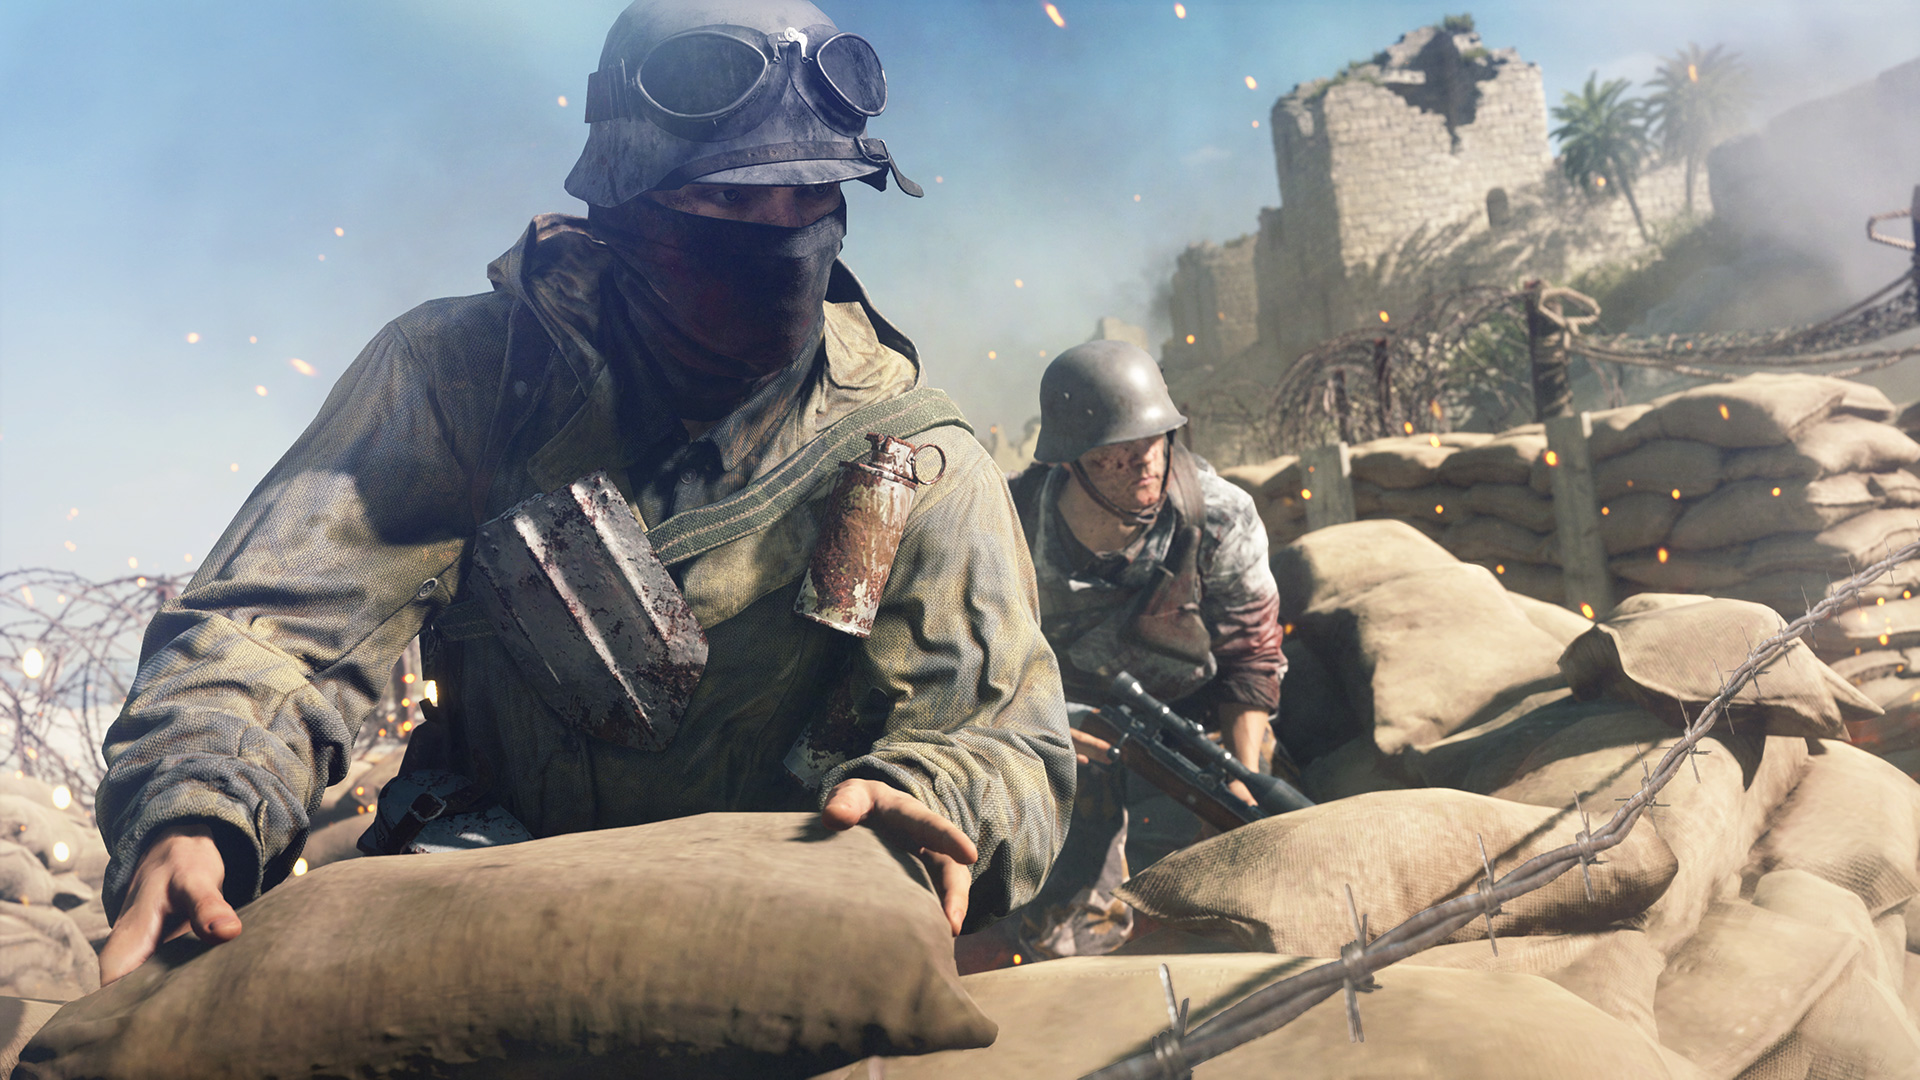 Battlefield 5's bite-sized campaign is more of a whimper than a bang